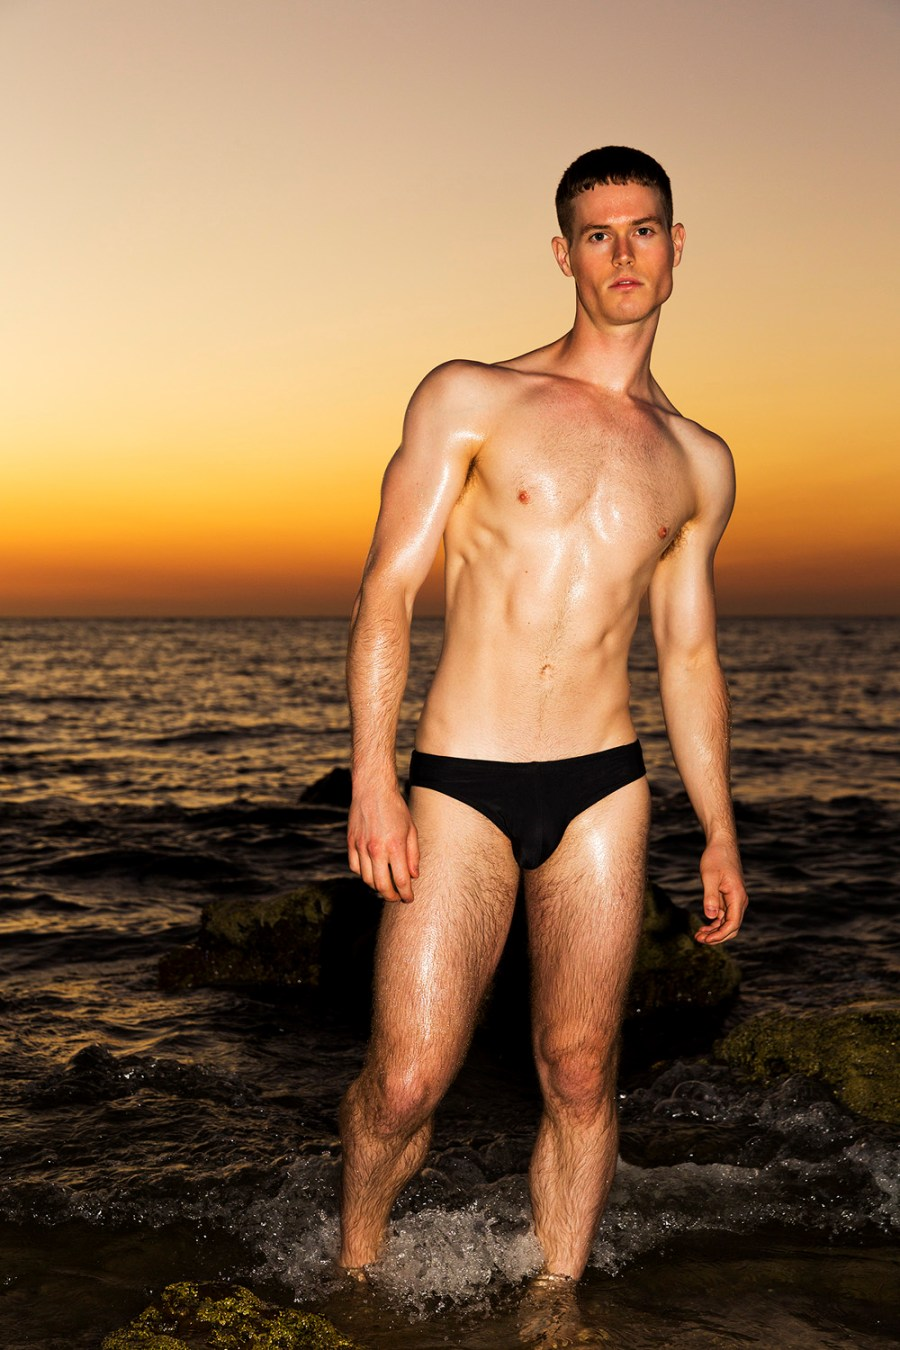 Let's meet this work of talented photographer Trent Pace featuring in exclusive for Fashionably Male model Matthew Harden in a beach paradise theme background where we can appreciate the real talent of Trent and Matthew. who's wearing black swim briefs by Cocksox and white briefs by Teamm8.